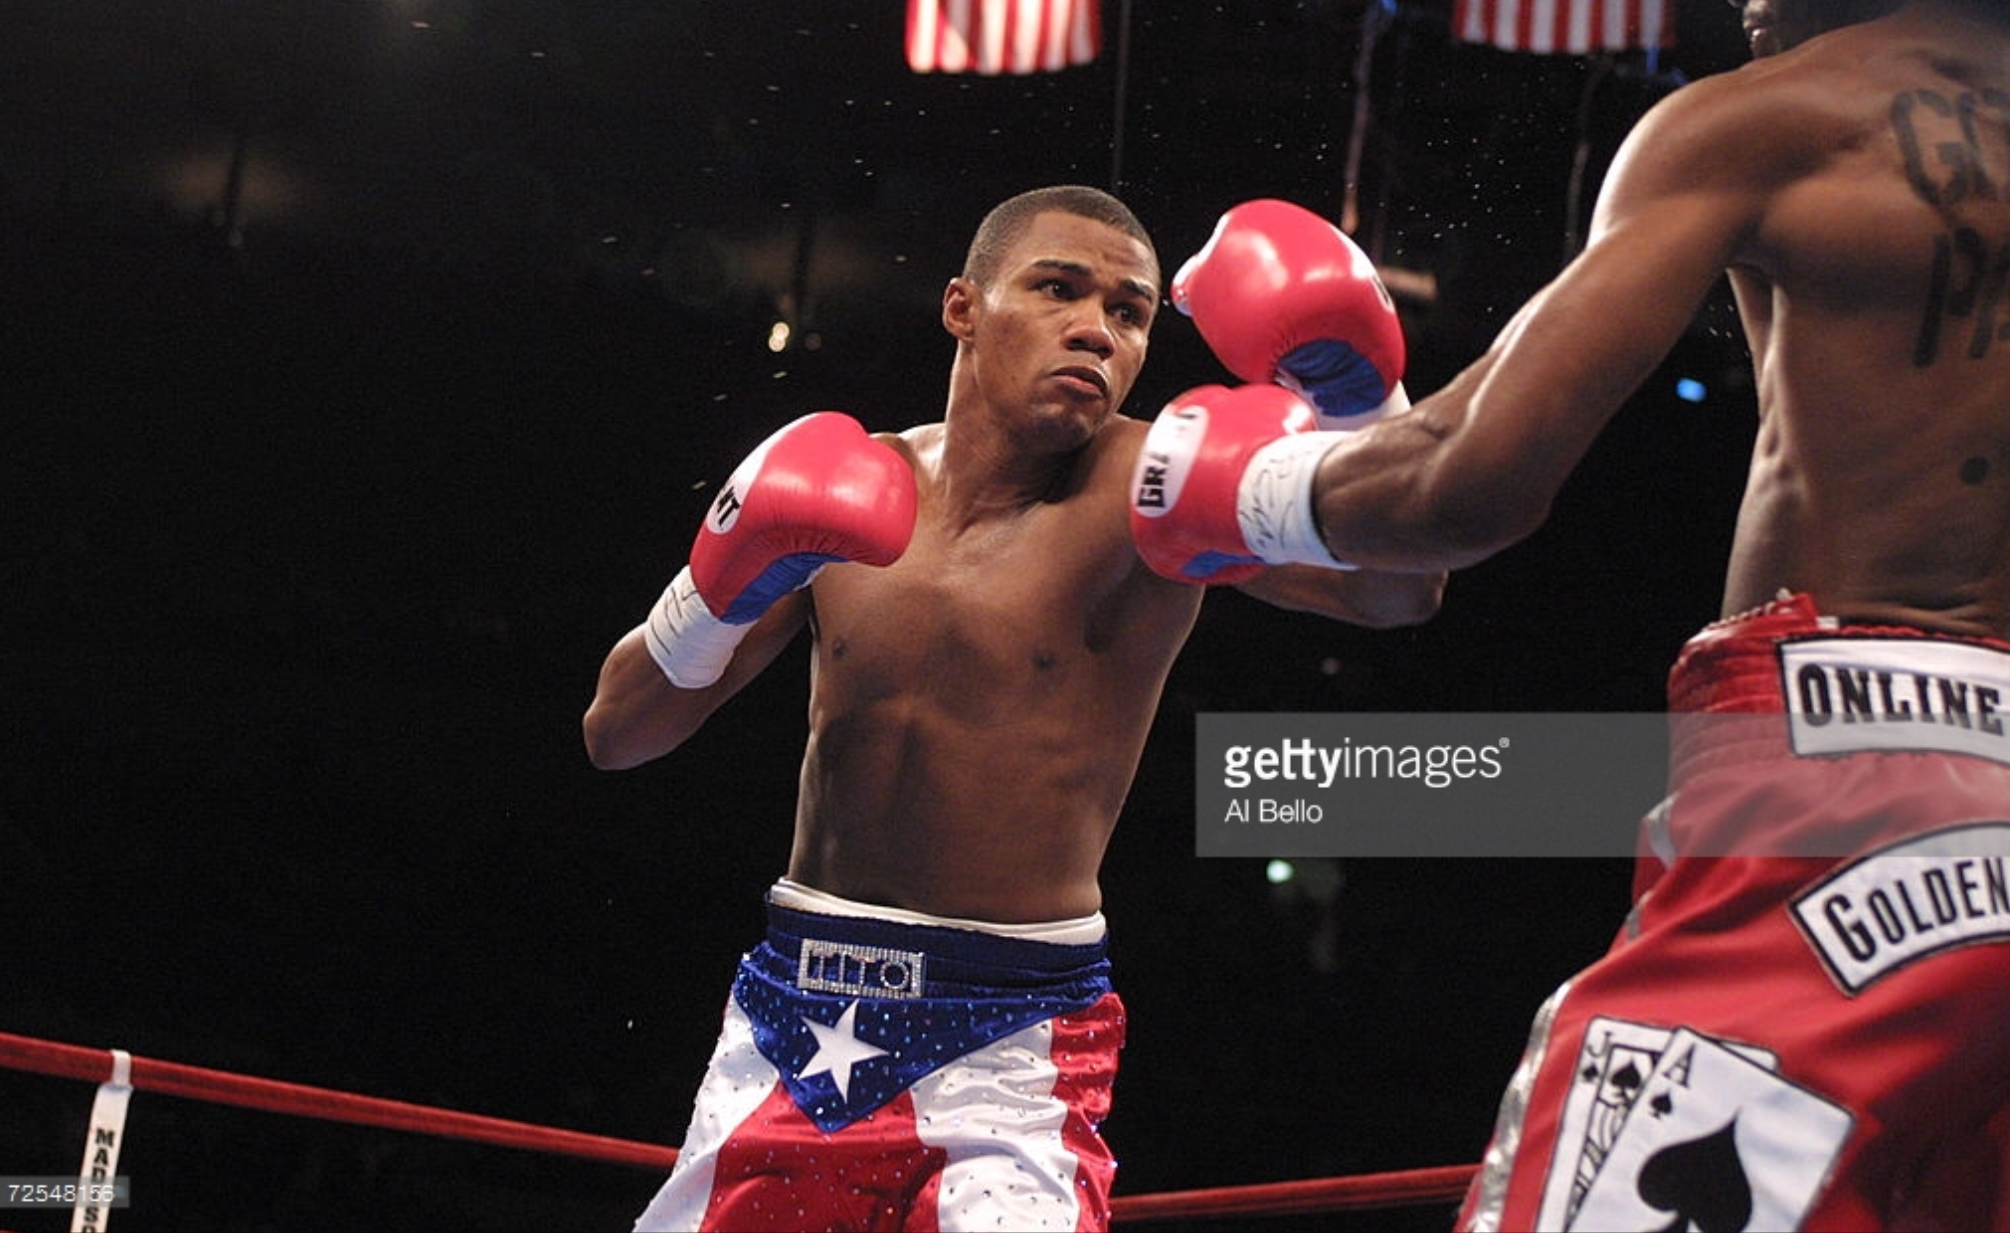 Felix Trinidad attempts to land a left jab on Bernard Hopkins. Photo: Al Bello/Getty Images